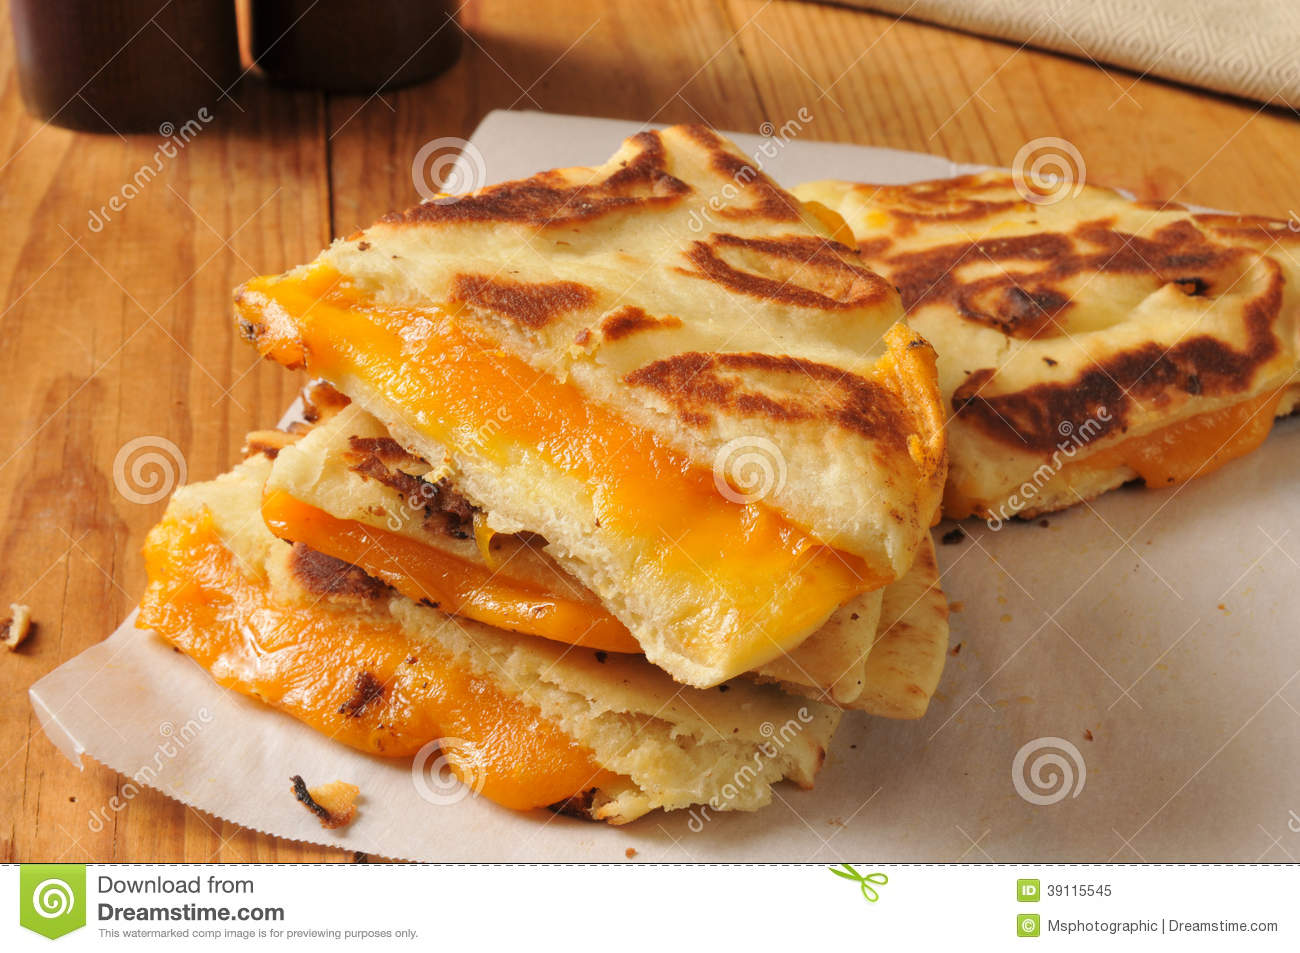 Grilled Cheese Sandwich On Naan Bread Stock Photo - Image: 39115545